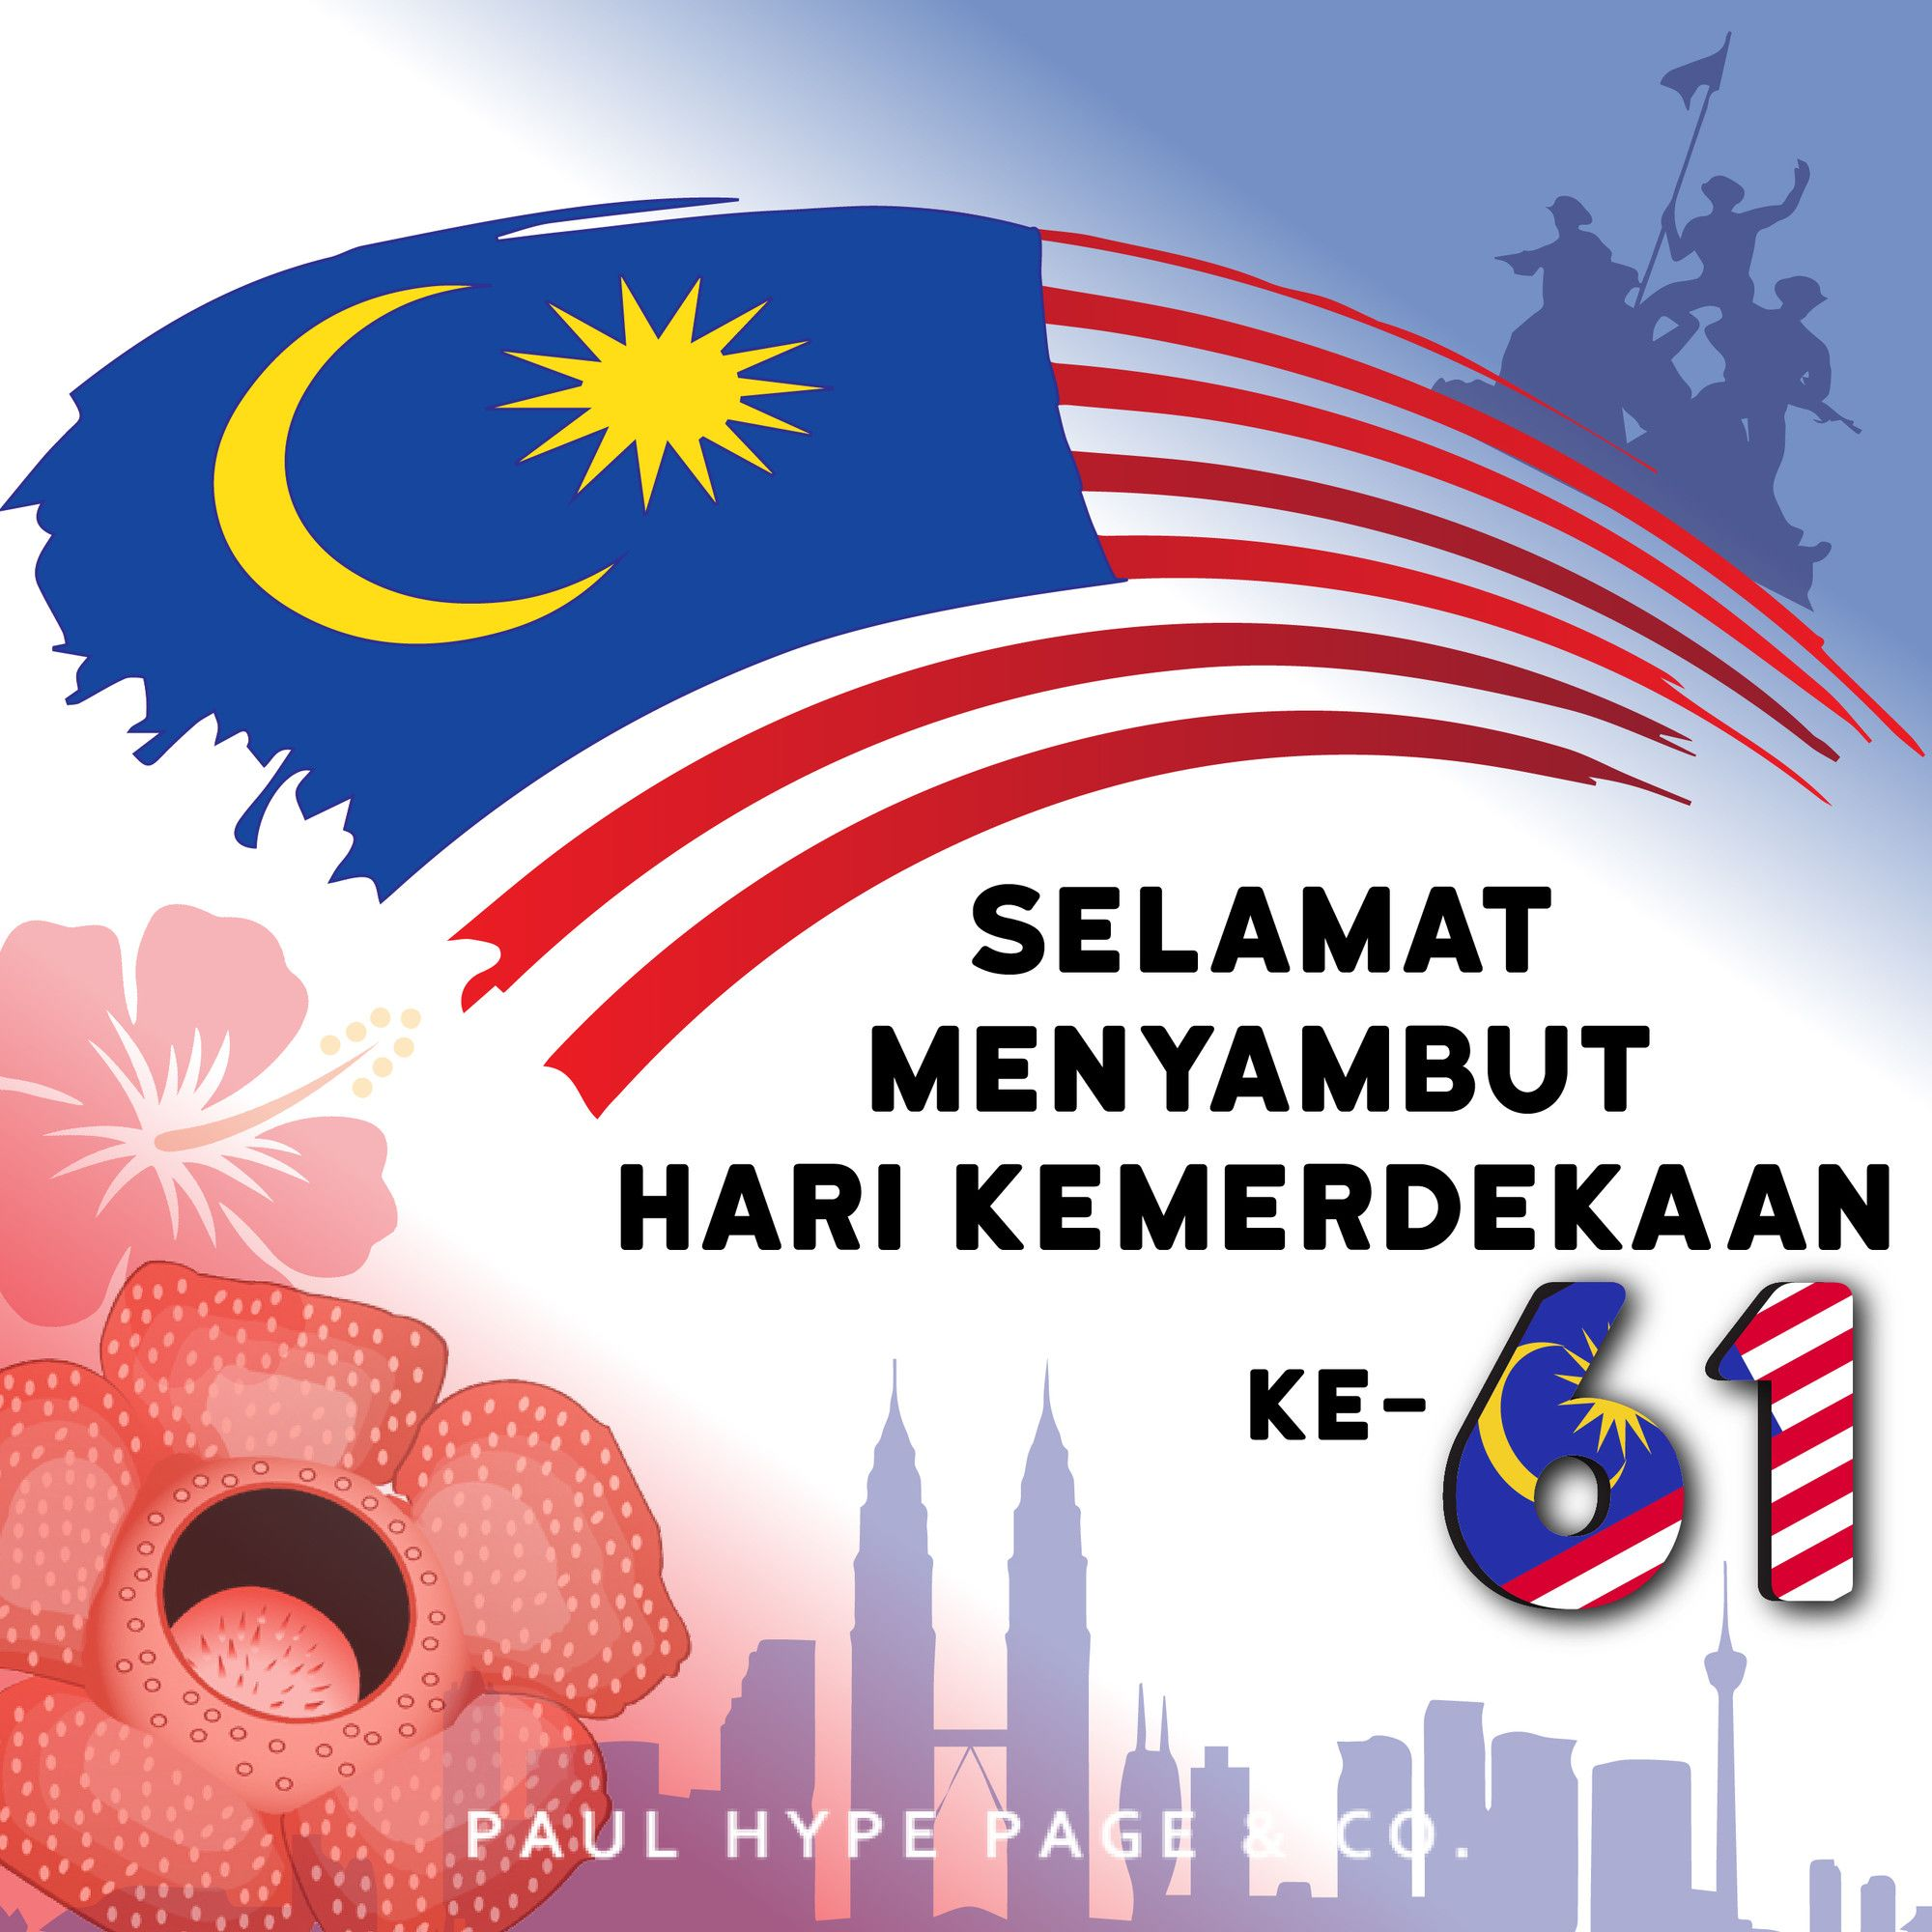 Malaysia Celebrates Its Independence Day On 31 August Every Year With Fireworks And Merdeka Independence Day Poster Independence Day Wallpaper Independence Day